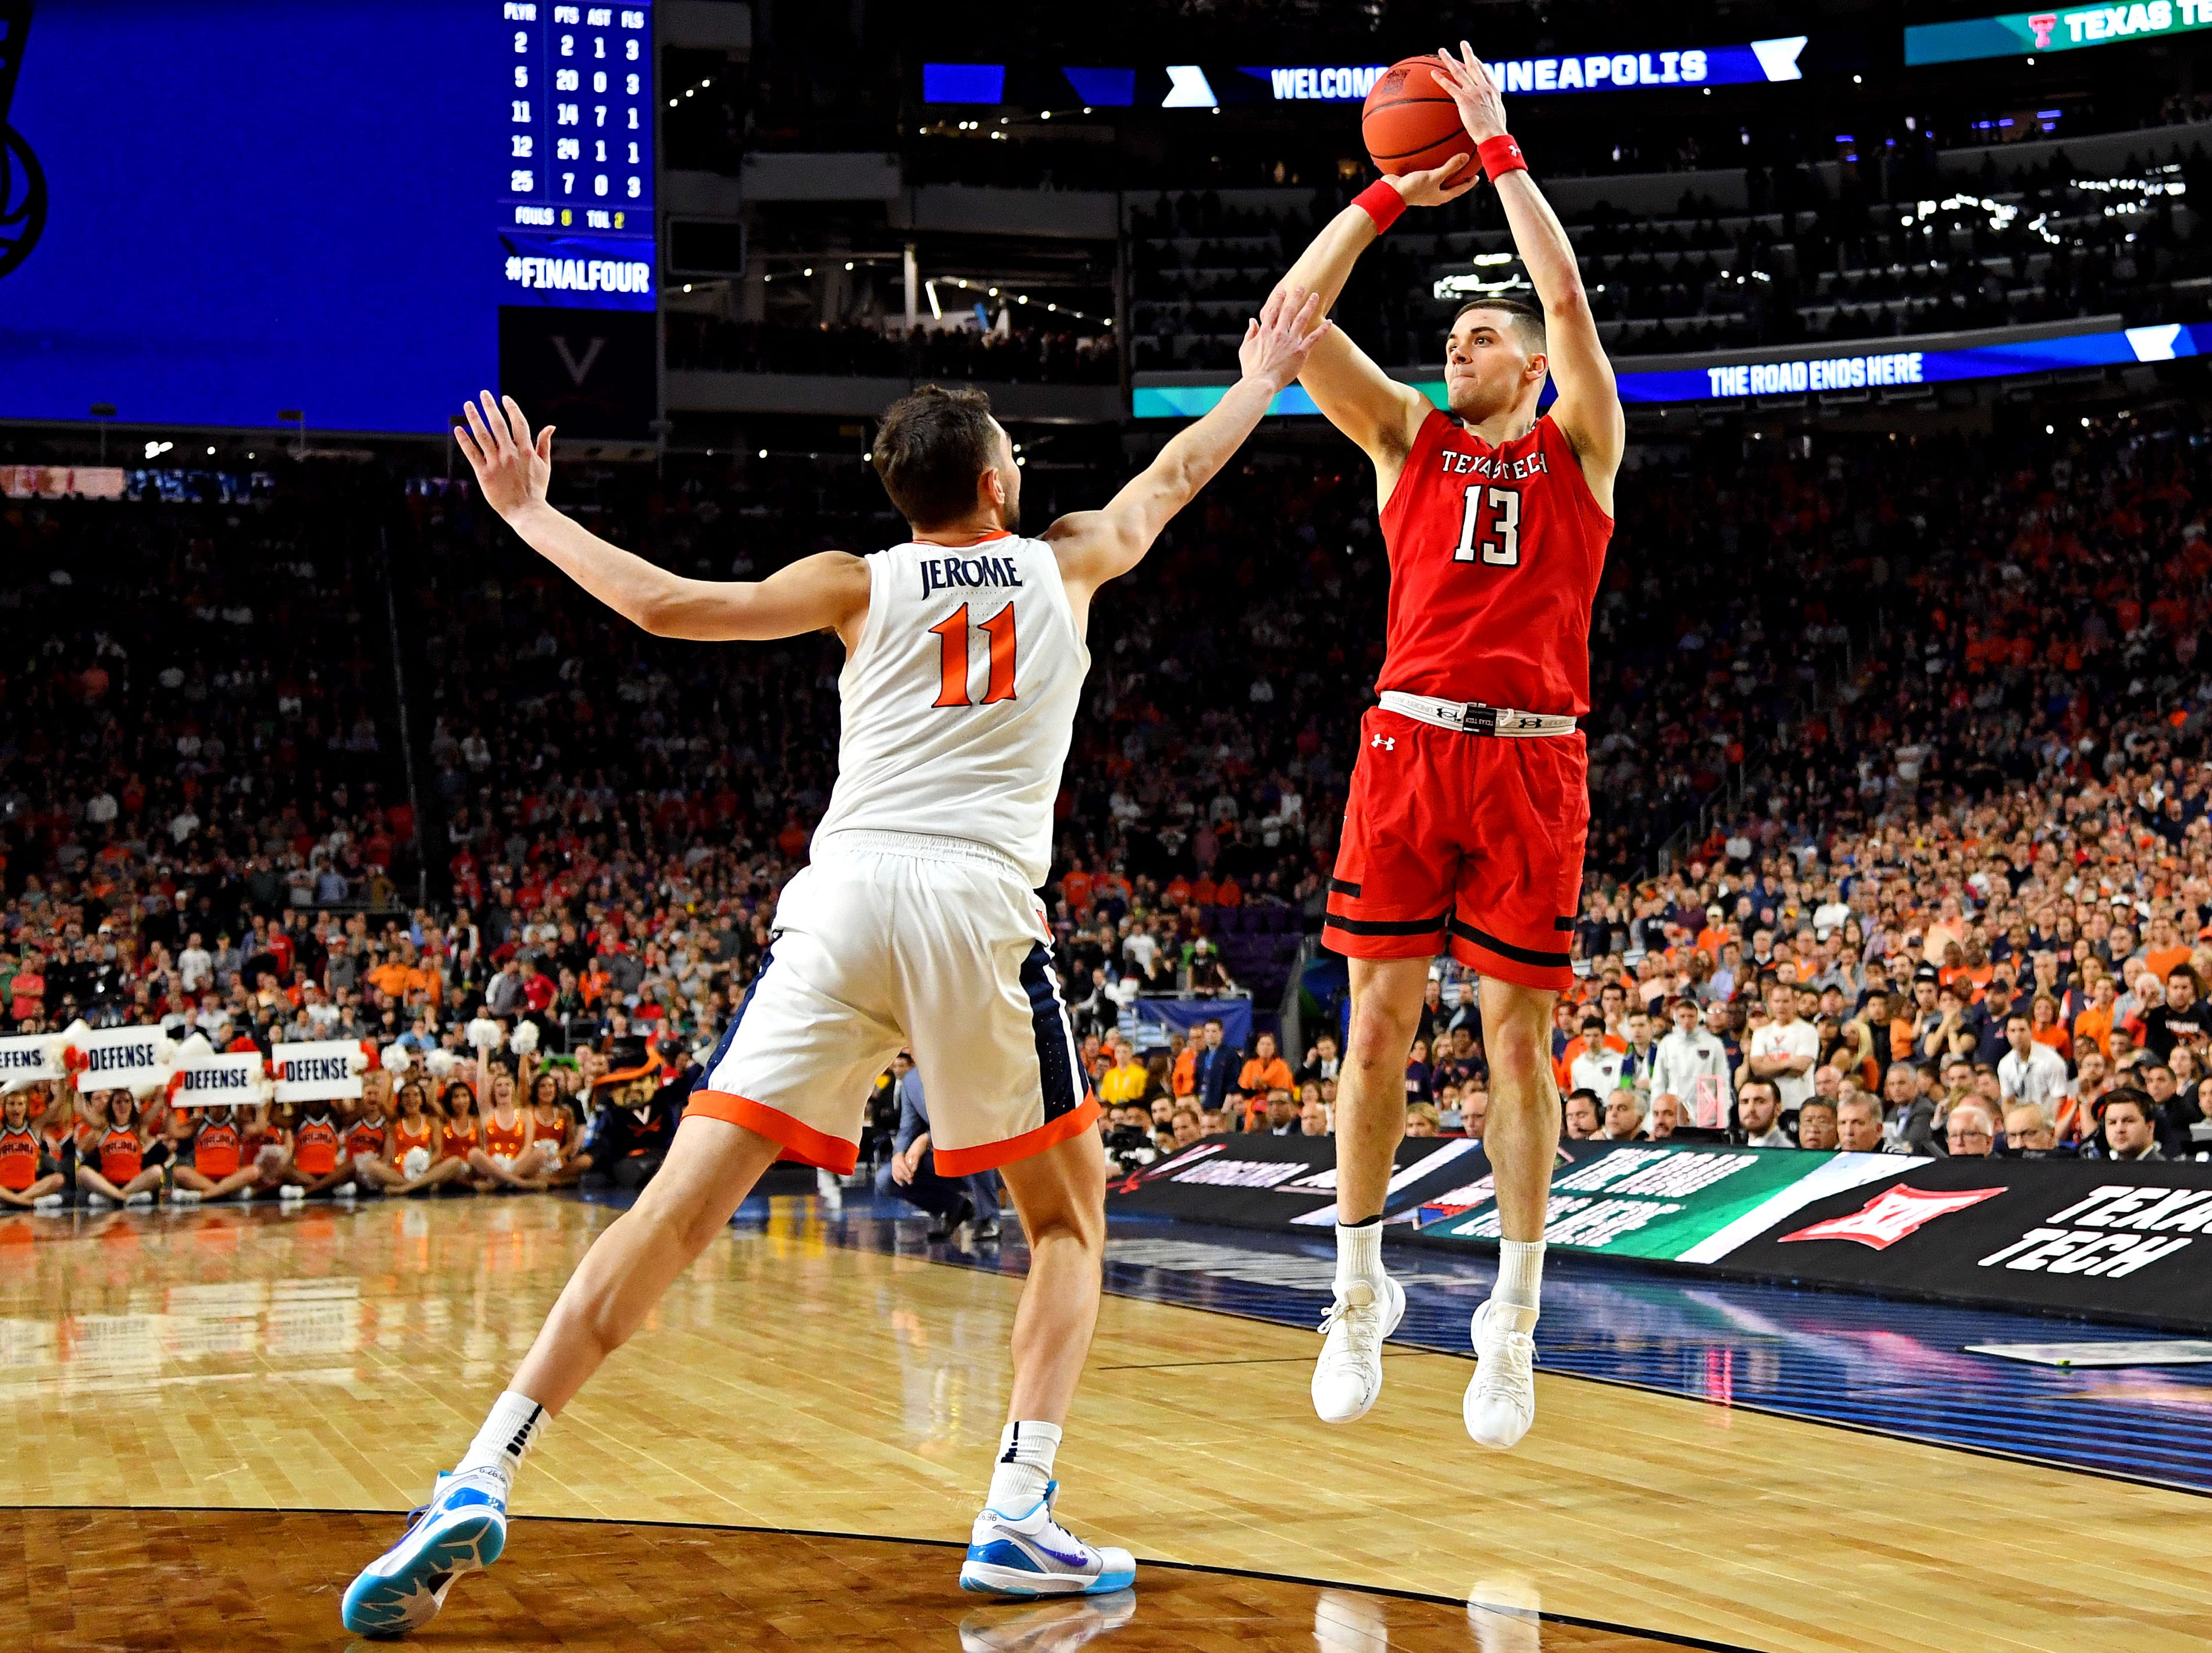 Apr 8, 2019; Minneapolis, MN, USA; Texas Tech Red Raiders guard Matt Mooney (13) shoots the ball against Virginia Cavaliers guard Ty Jerome (11) during overtime in the championship game of the 2019 men's Final Four at US Bank Stadium. Mandatory Credit: Bob Donnan-USA TODAY Sports